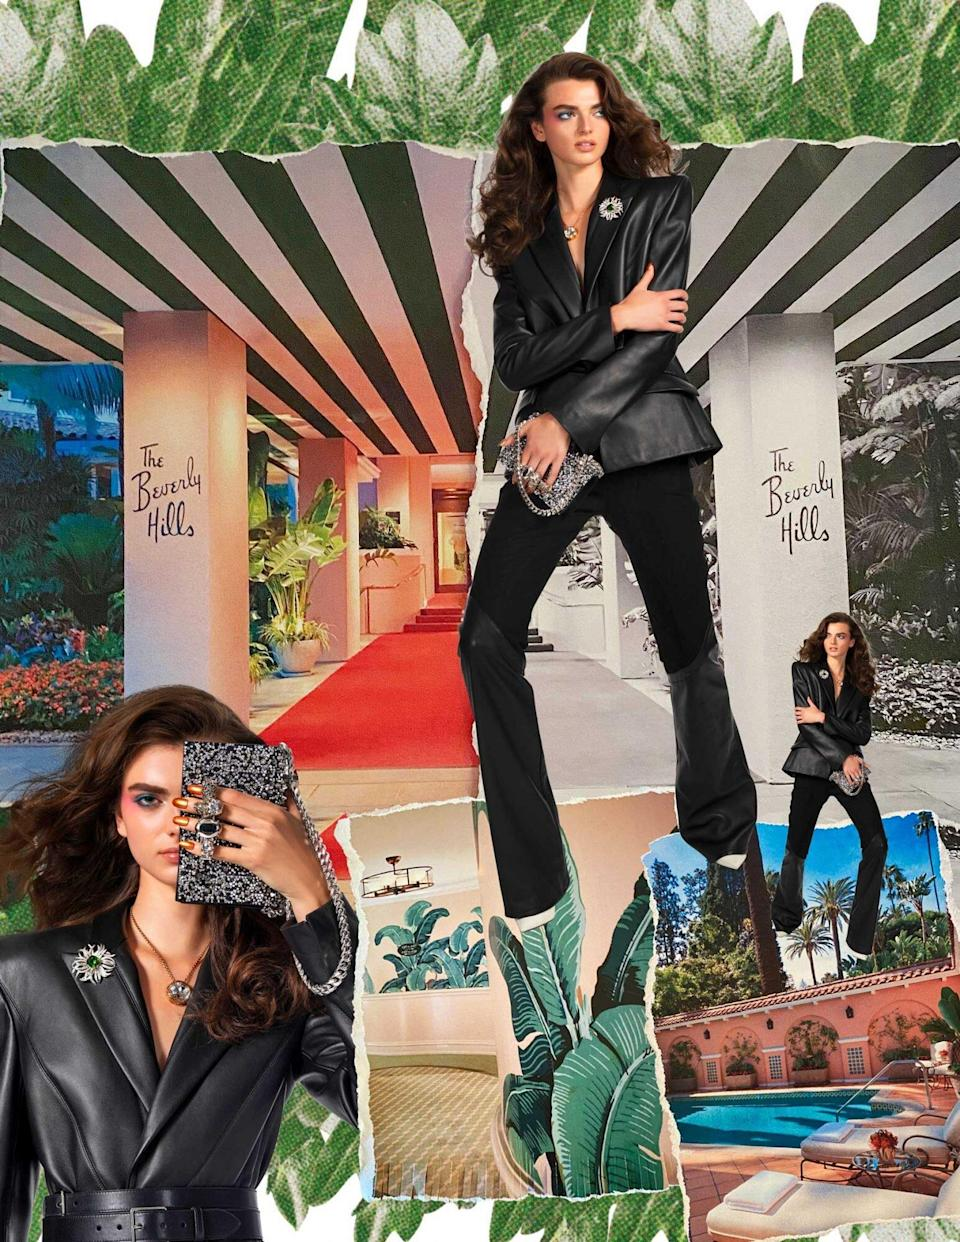 Photos of a model wearing a black pant suit, superimposed on photos of the Beverly Hills Hotel